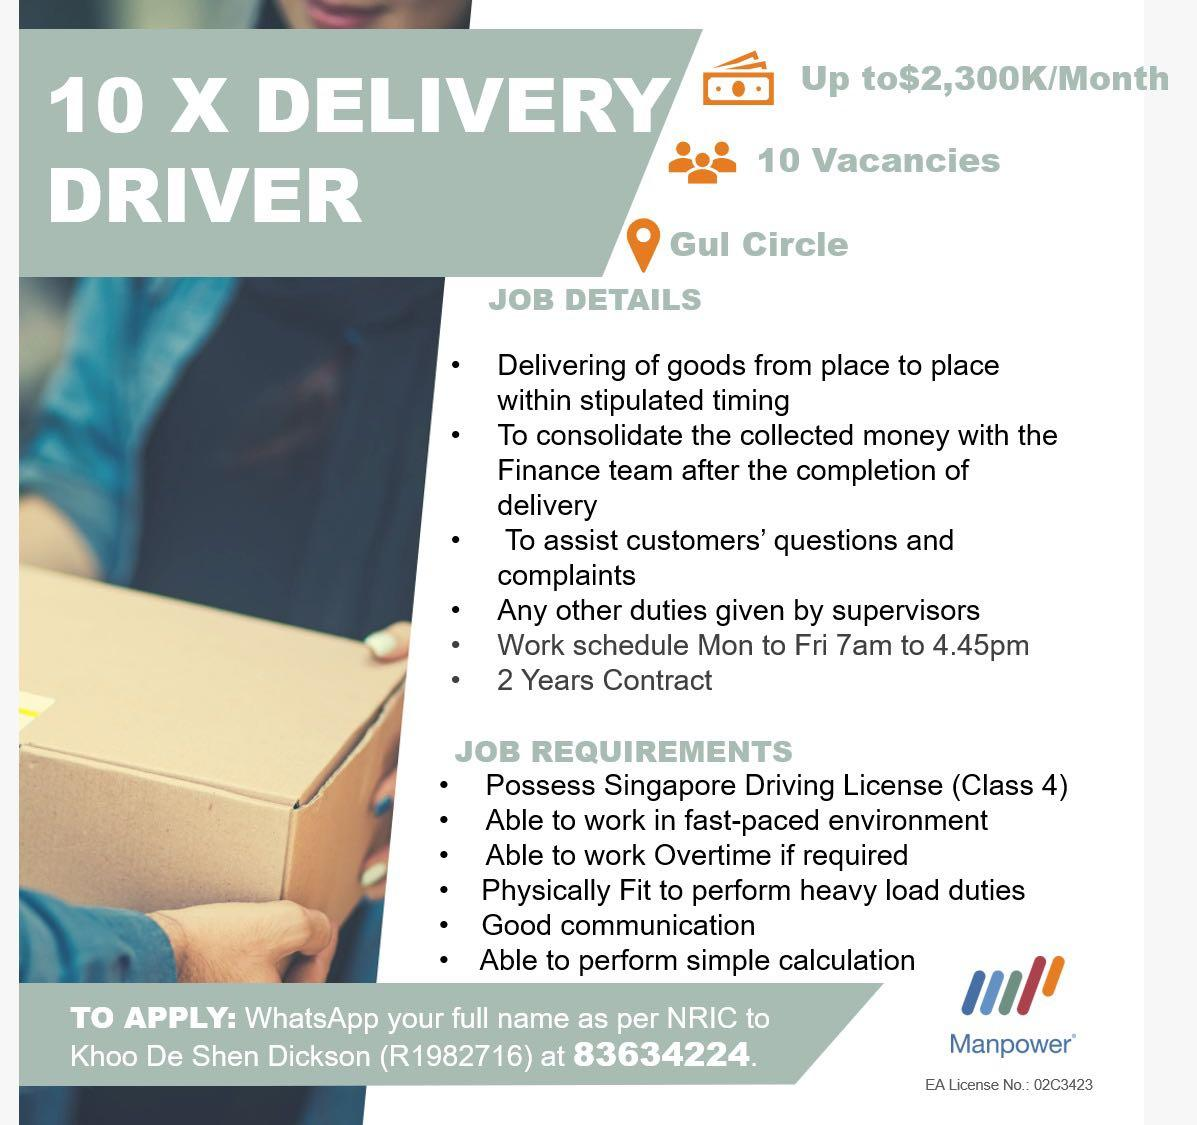 Up to $2.3k per Month 10 X Delivery Driver /Tuas/2 years